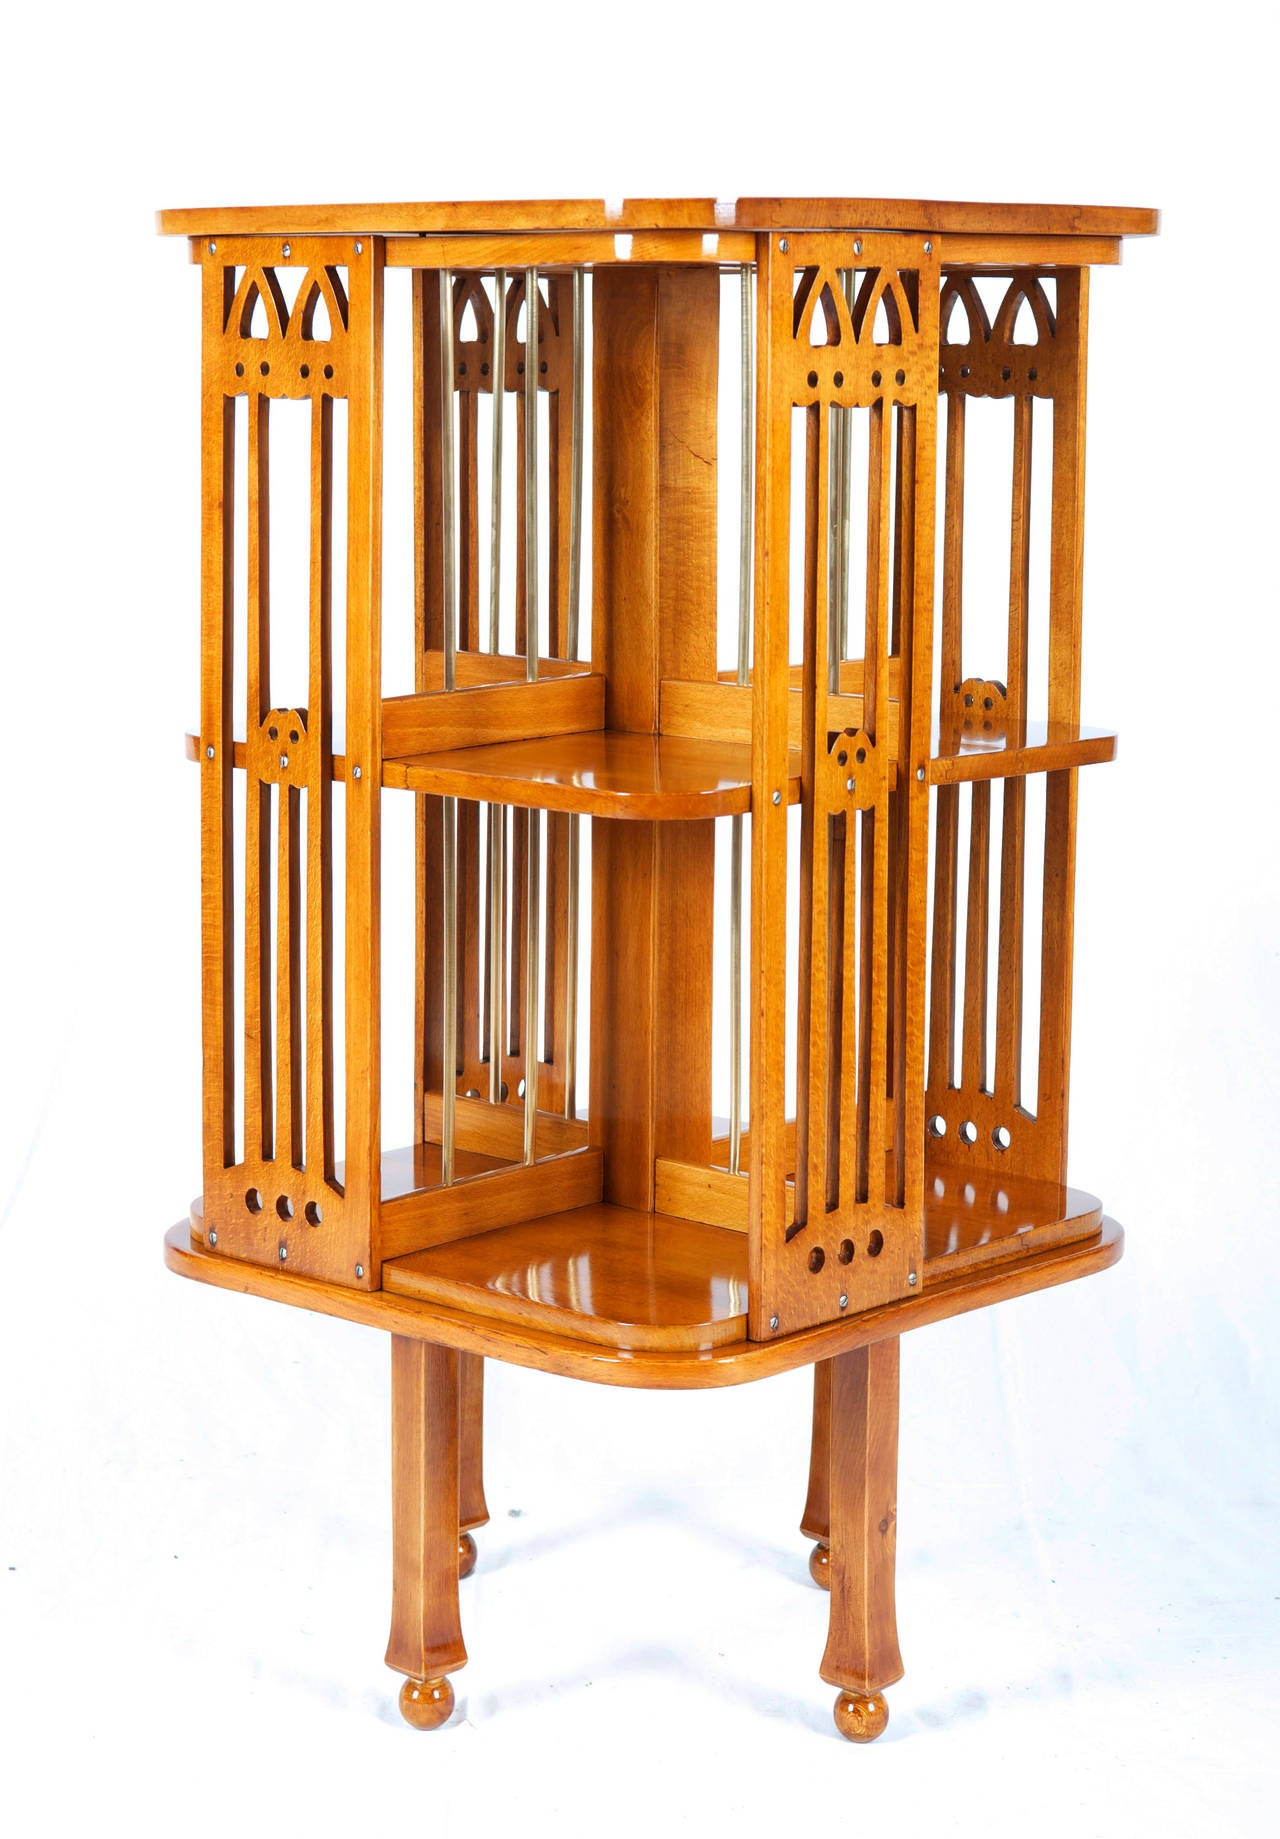 revolving chair manufacturers in ulhasnagar peg perego prima pappa newborn high very rare thonet bookcase attributed to josef